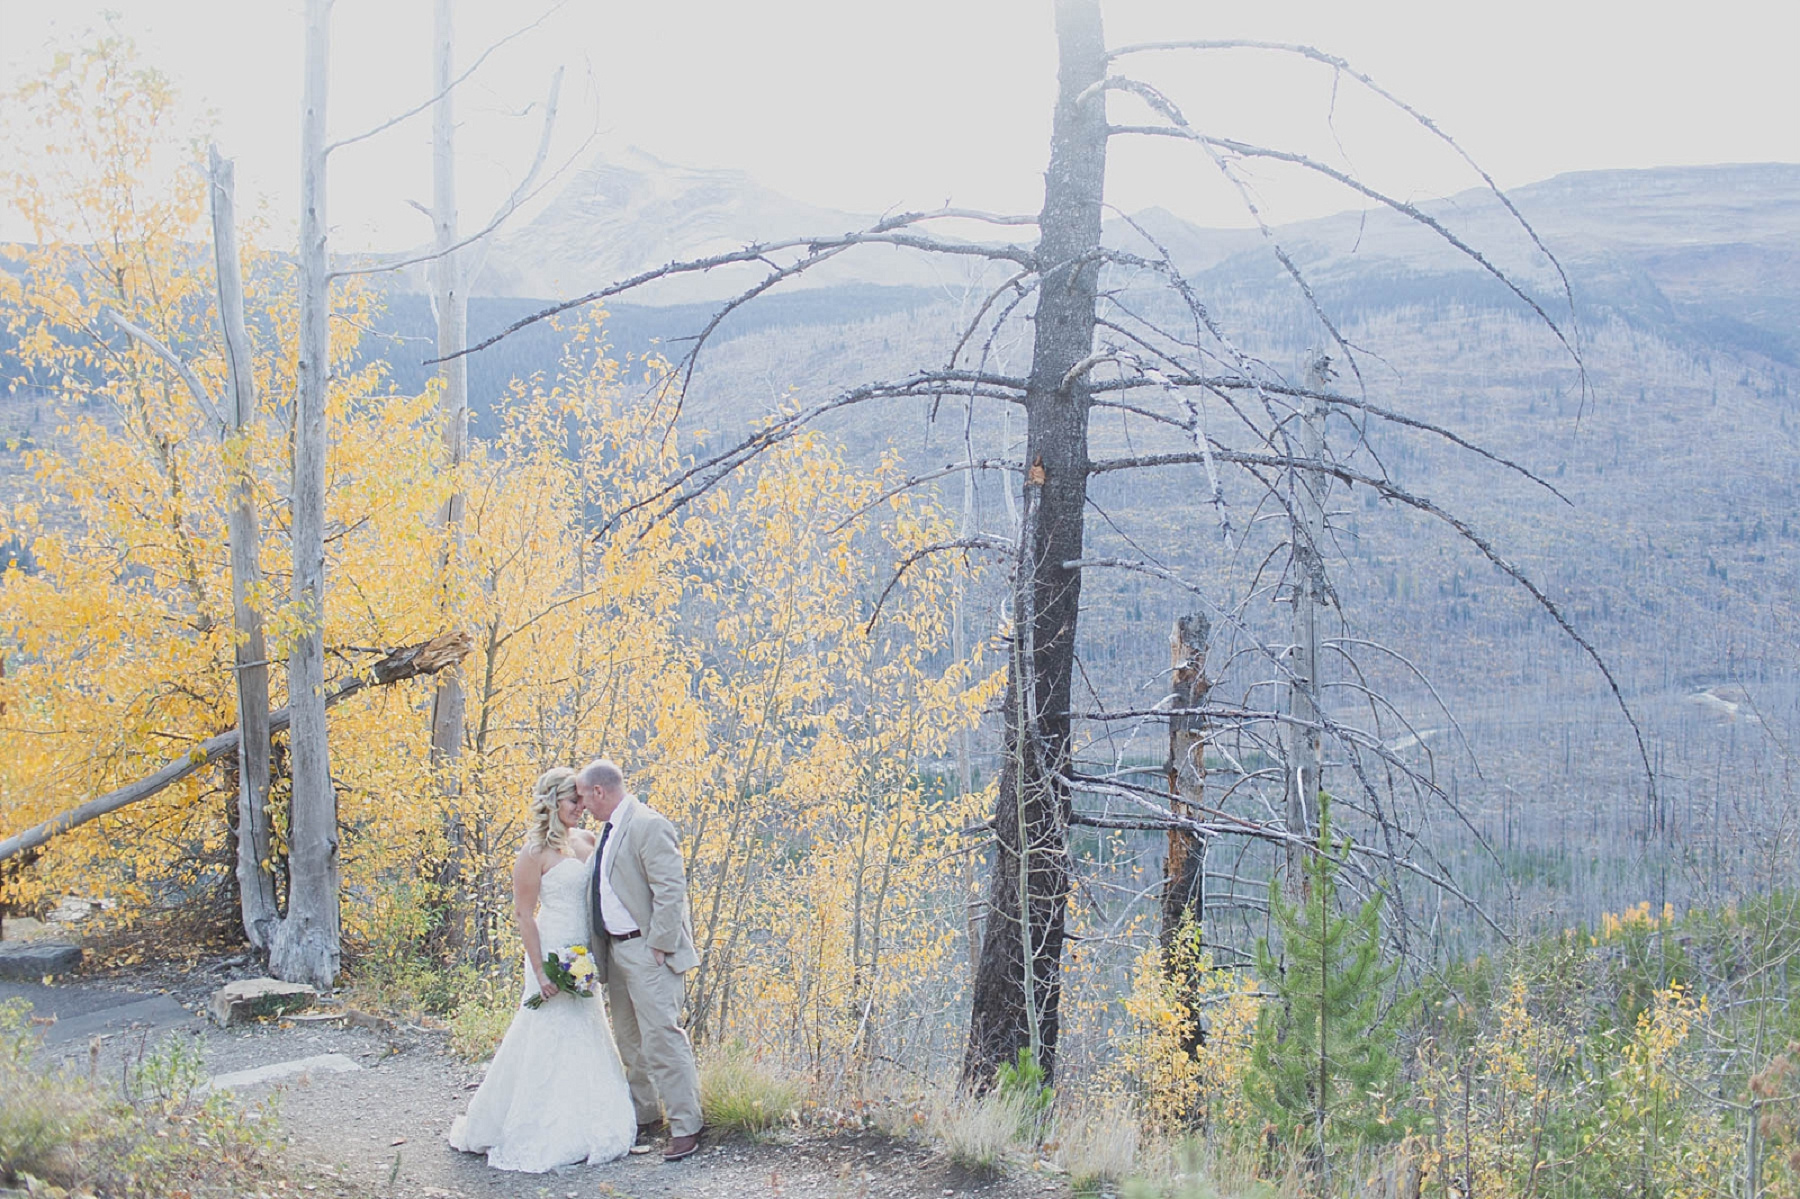 Jennifer_Mooney_photo_day_after_session_glacier_park_elegant_wedding_bride_groom_destination_-27.jpg